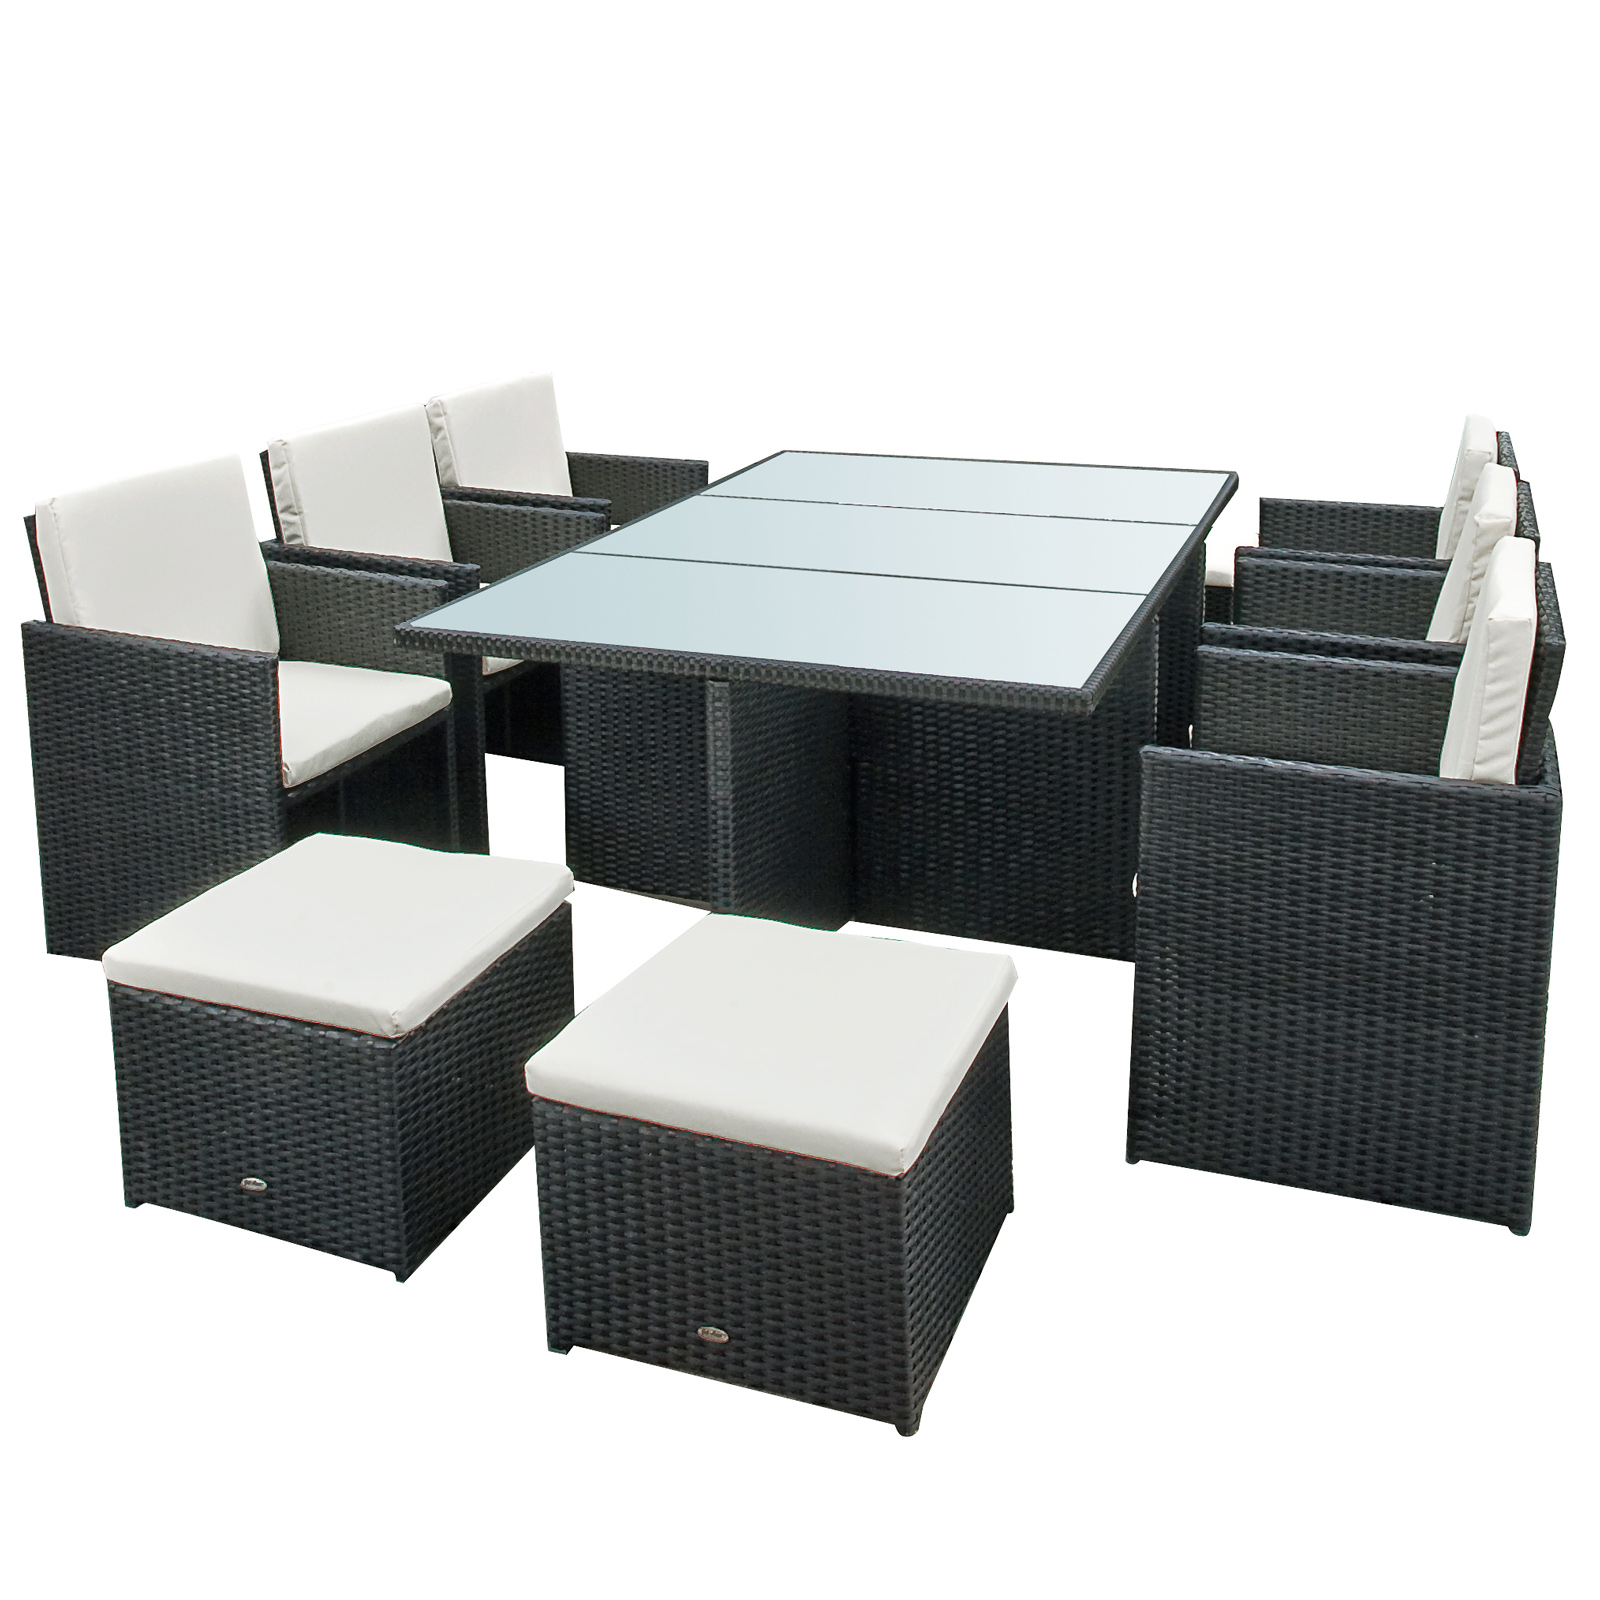 rattan gartenm bel ikea neuesten design kollektionen f r die familien. Black Bedroom Furniture Sets. Home Design Ideas